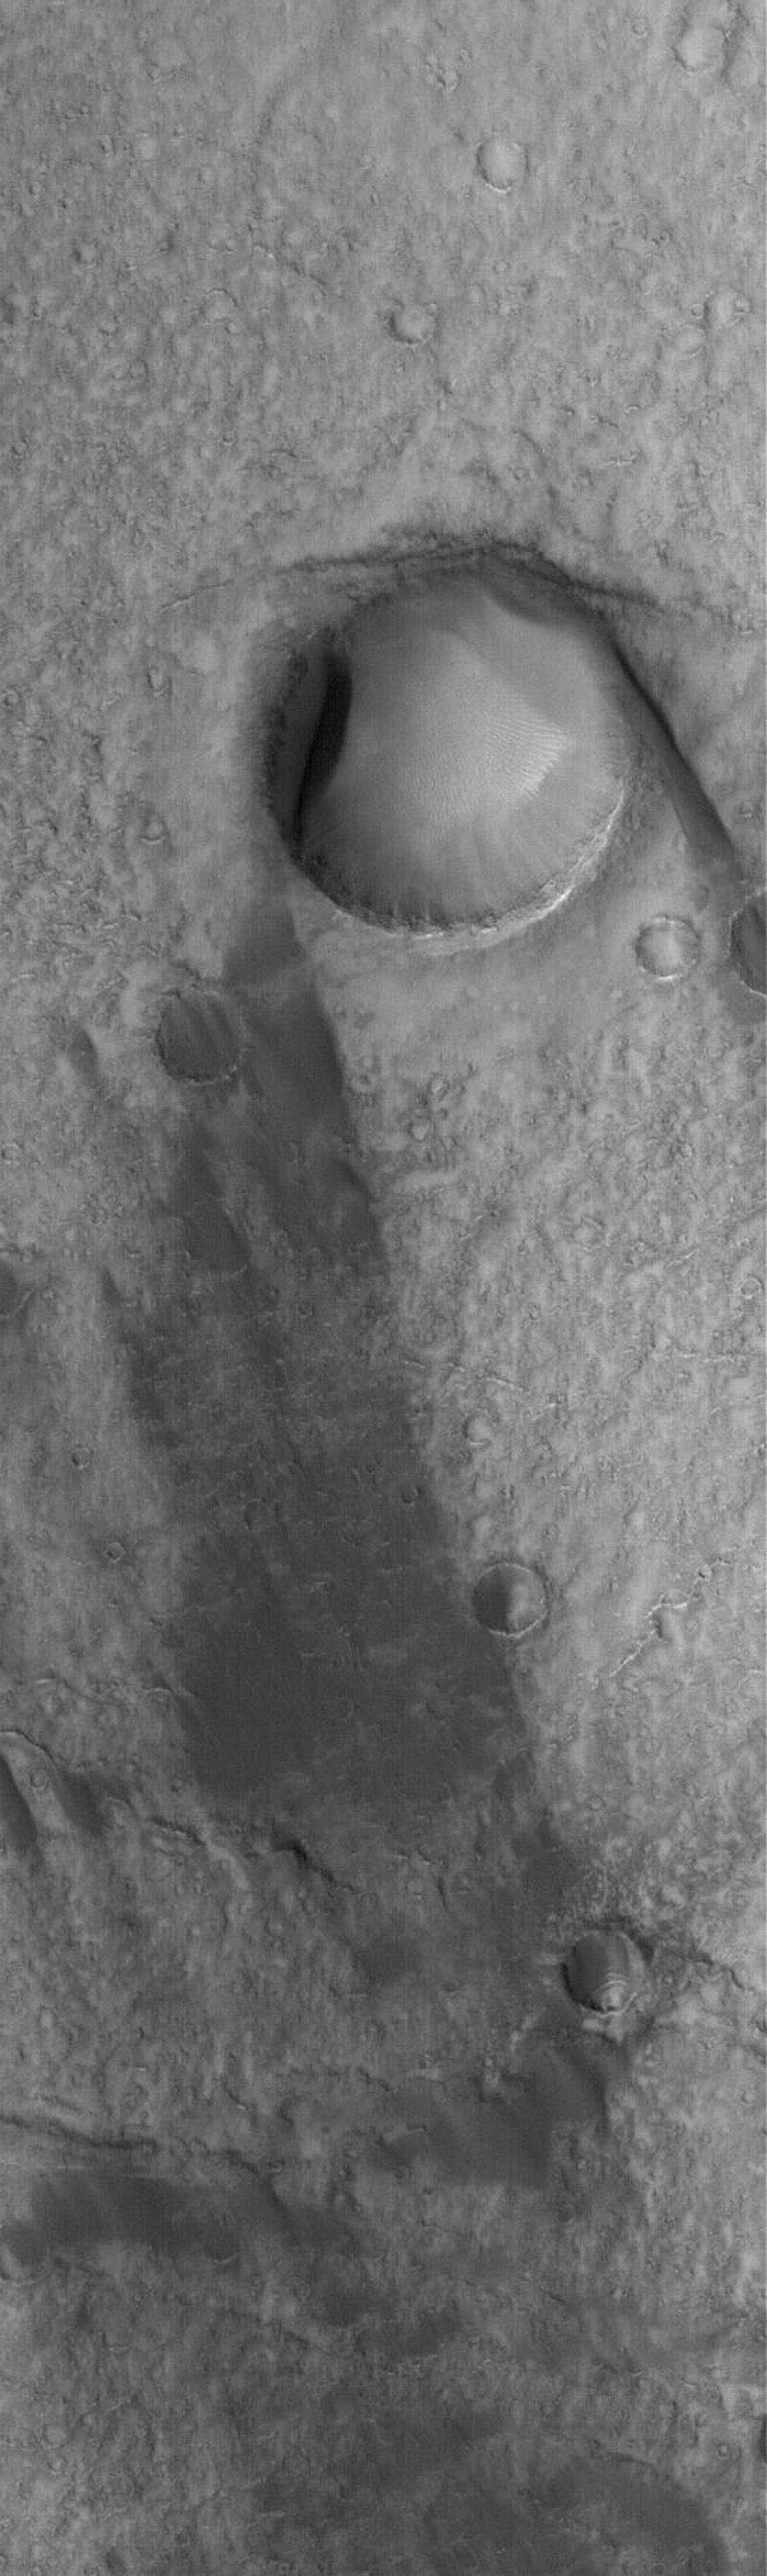 NASA's Mars Global Surveyor shows the results of wind action on the floor of the giant martian impact basin, Huygens. The large crater in this image has a wind streak on its lee side.